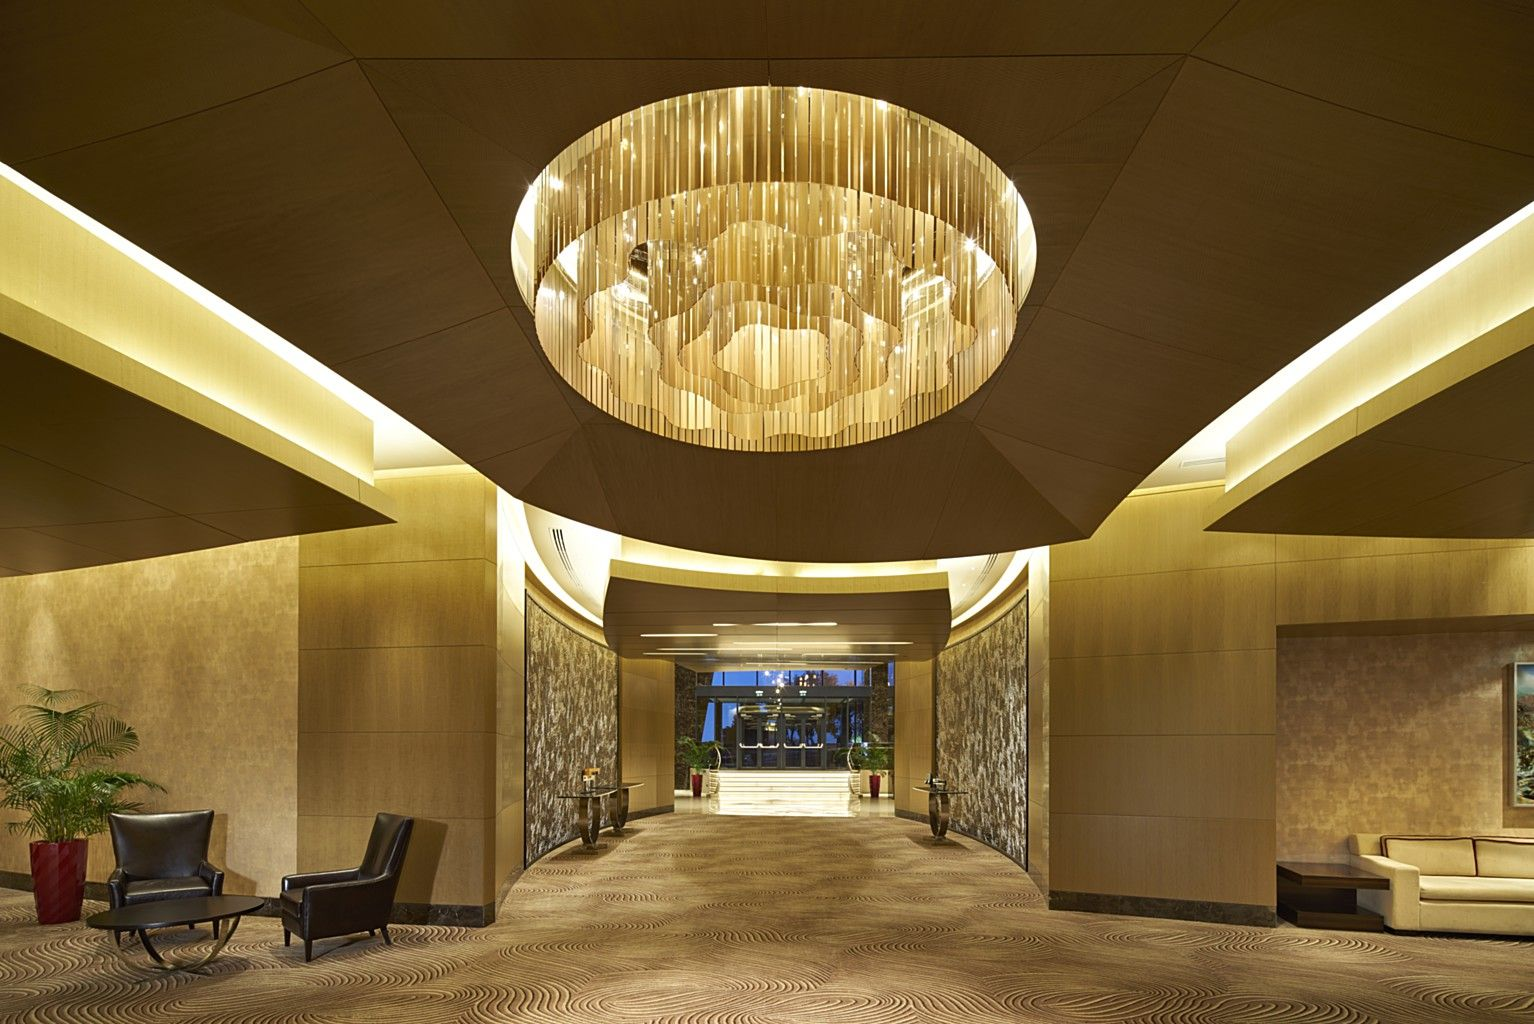 Damla Led Lighting Systems Fairmont Hotel Flame Towers